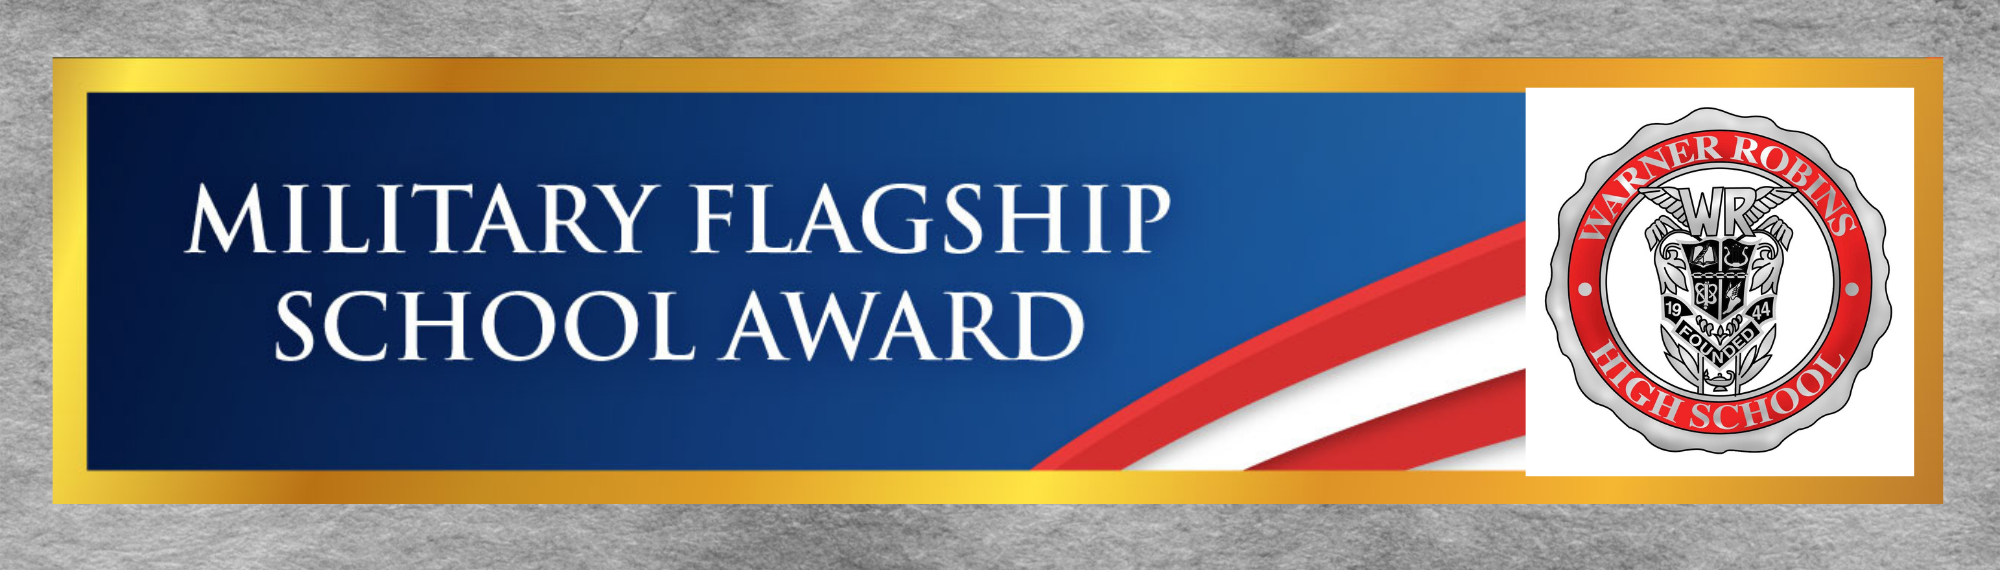 Military Flagship School Award Banner 3-21